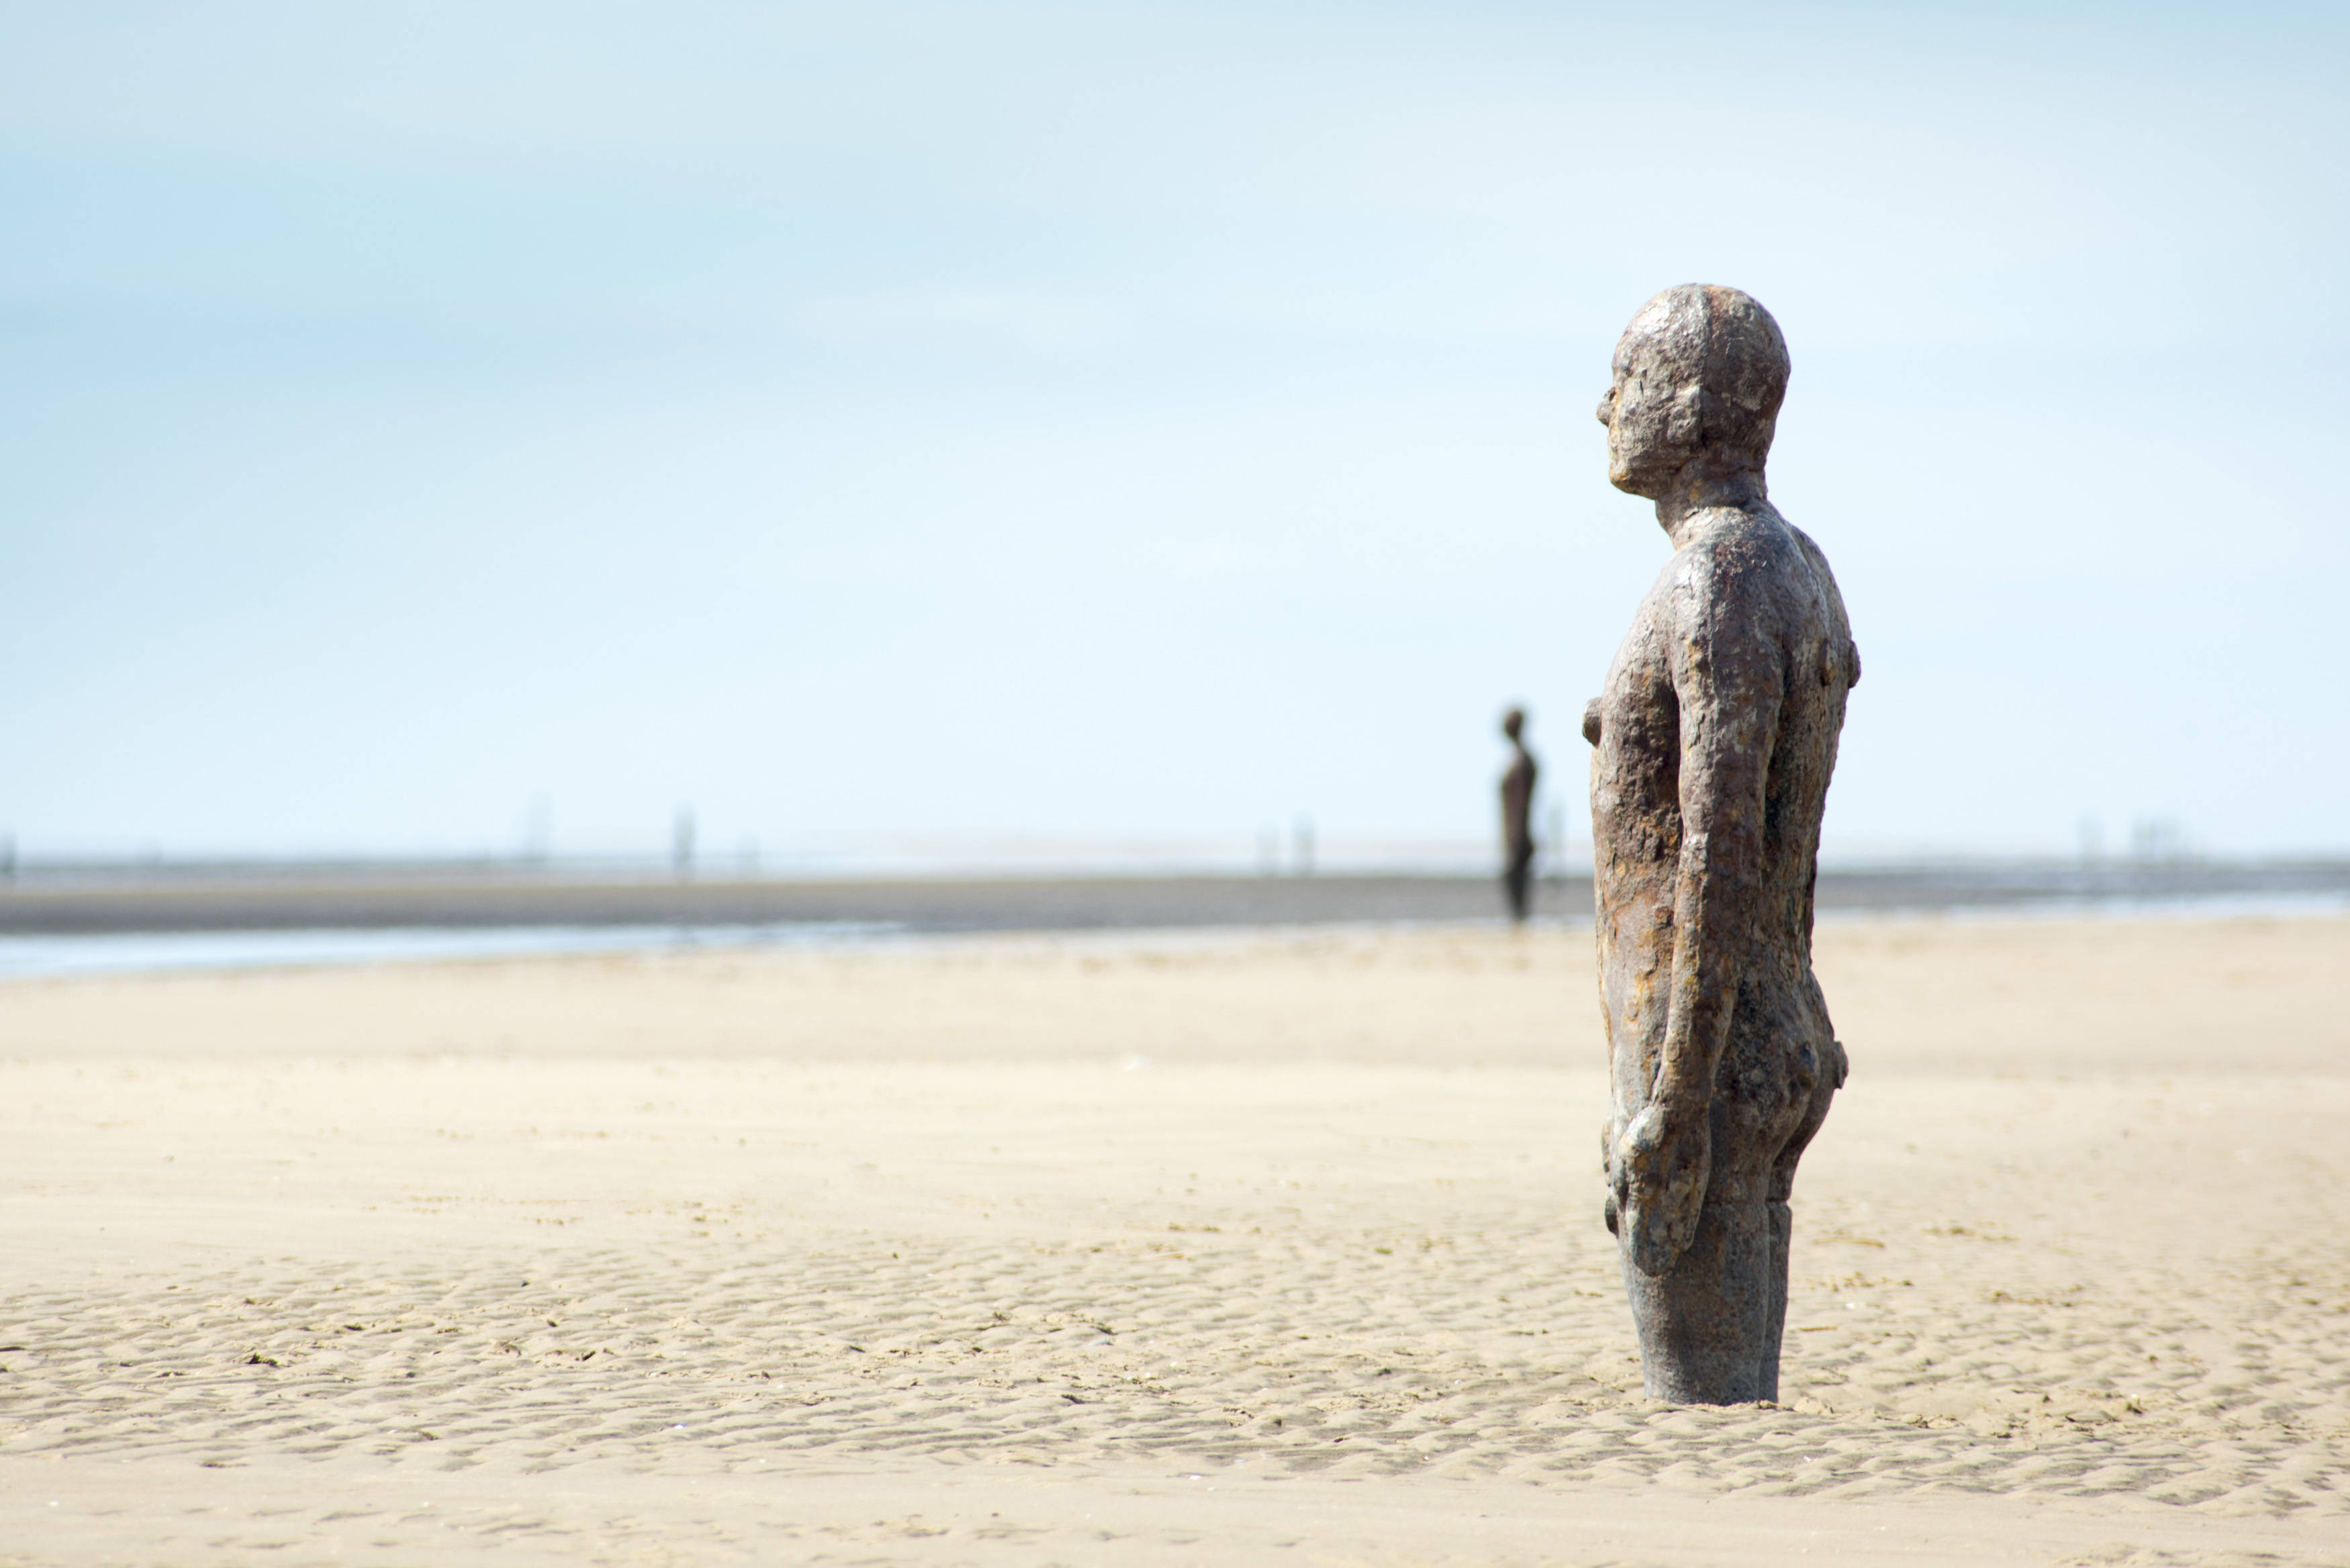 Cast iron statue in the sand on a beach facing out to sea - Another Place, by Antony Gormley at Crosby Beach, Liverpool UK